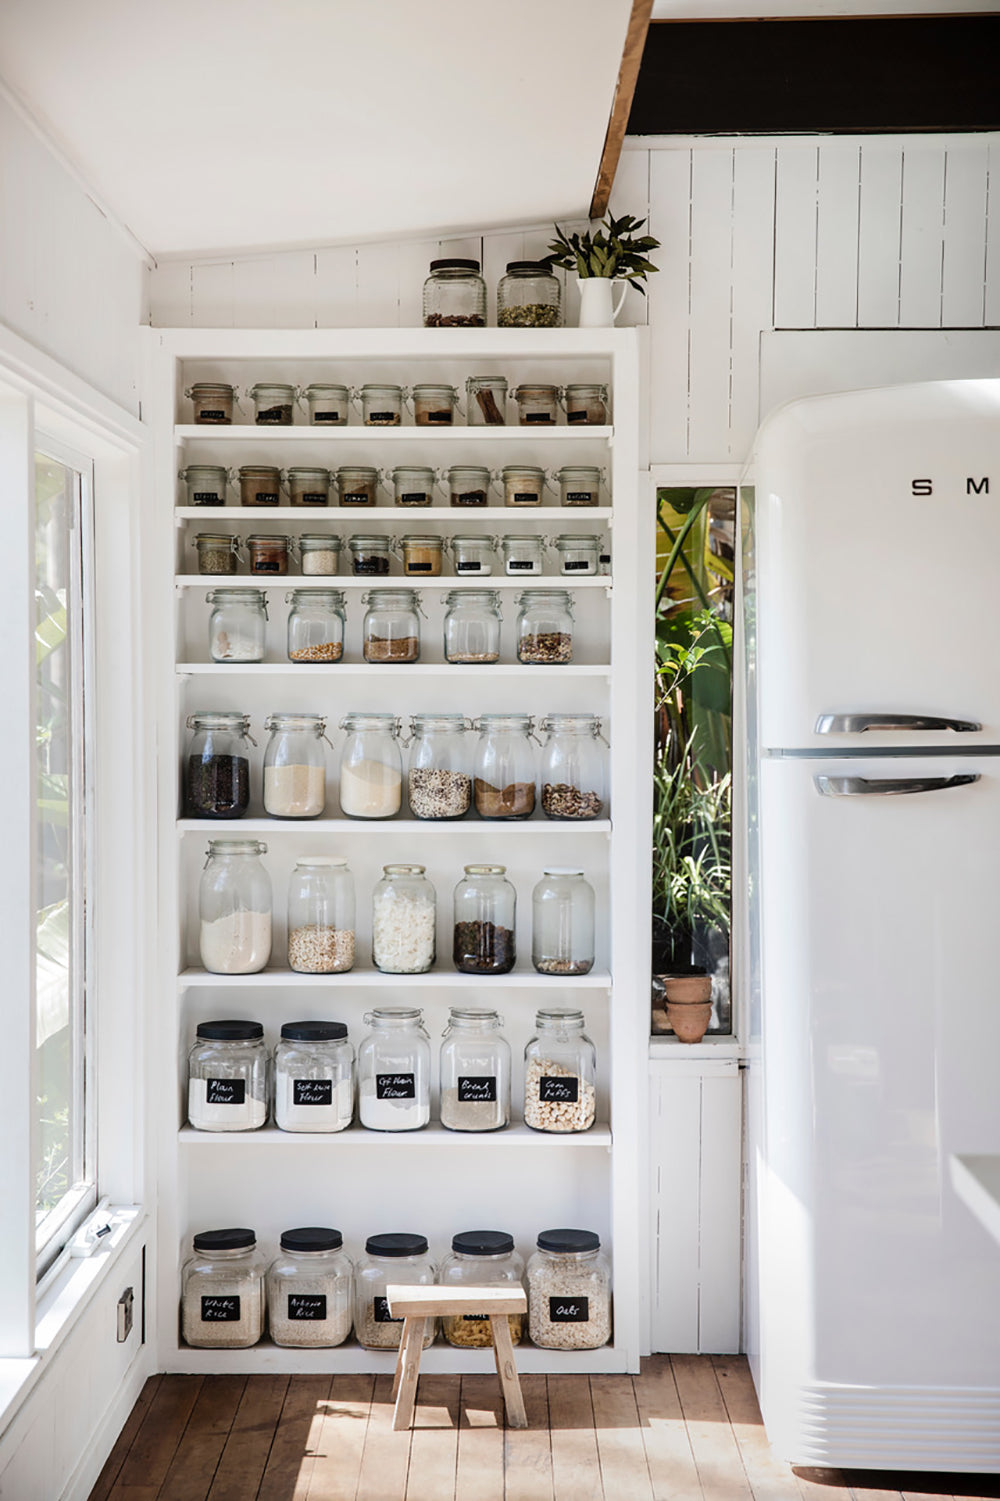 cupboard with spices in jugs